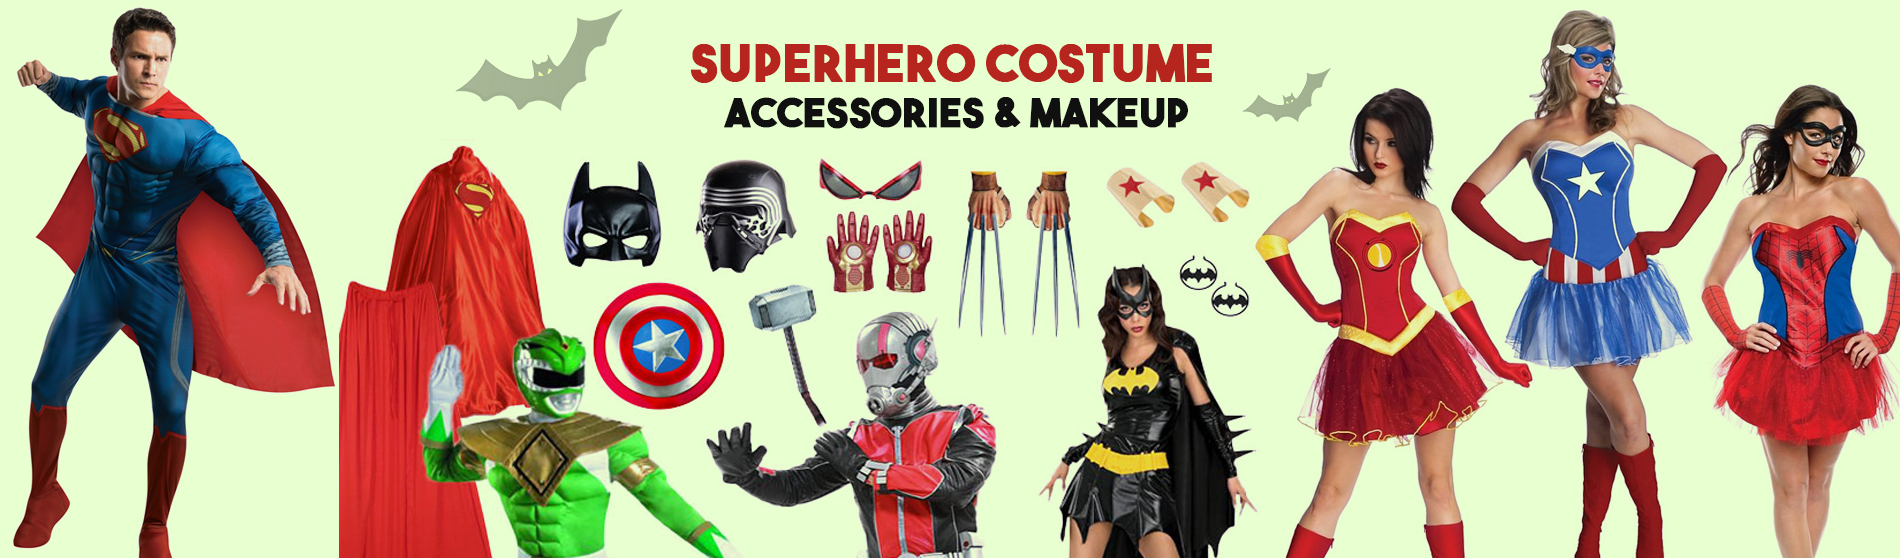 superhero-costume-accessories